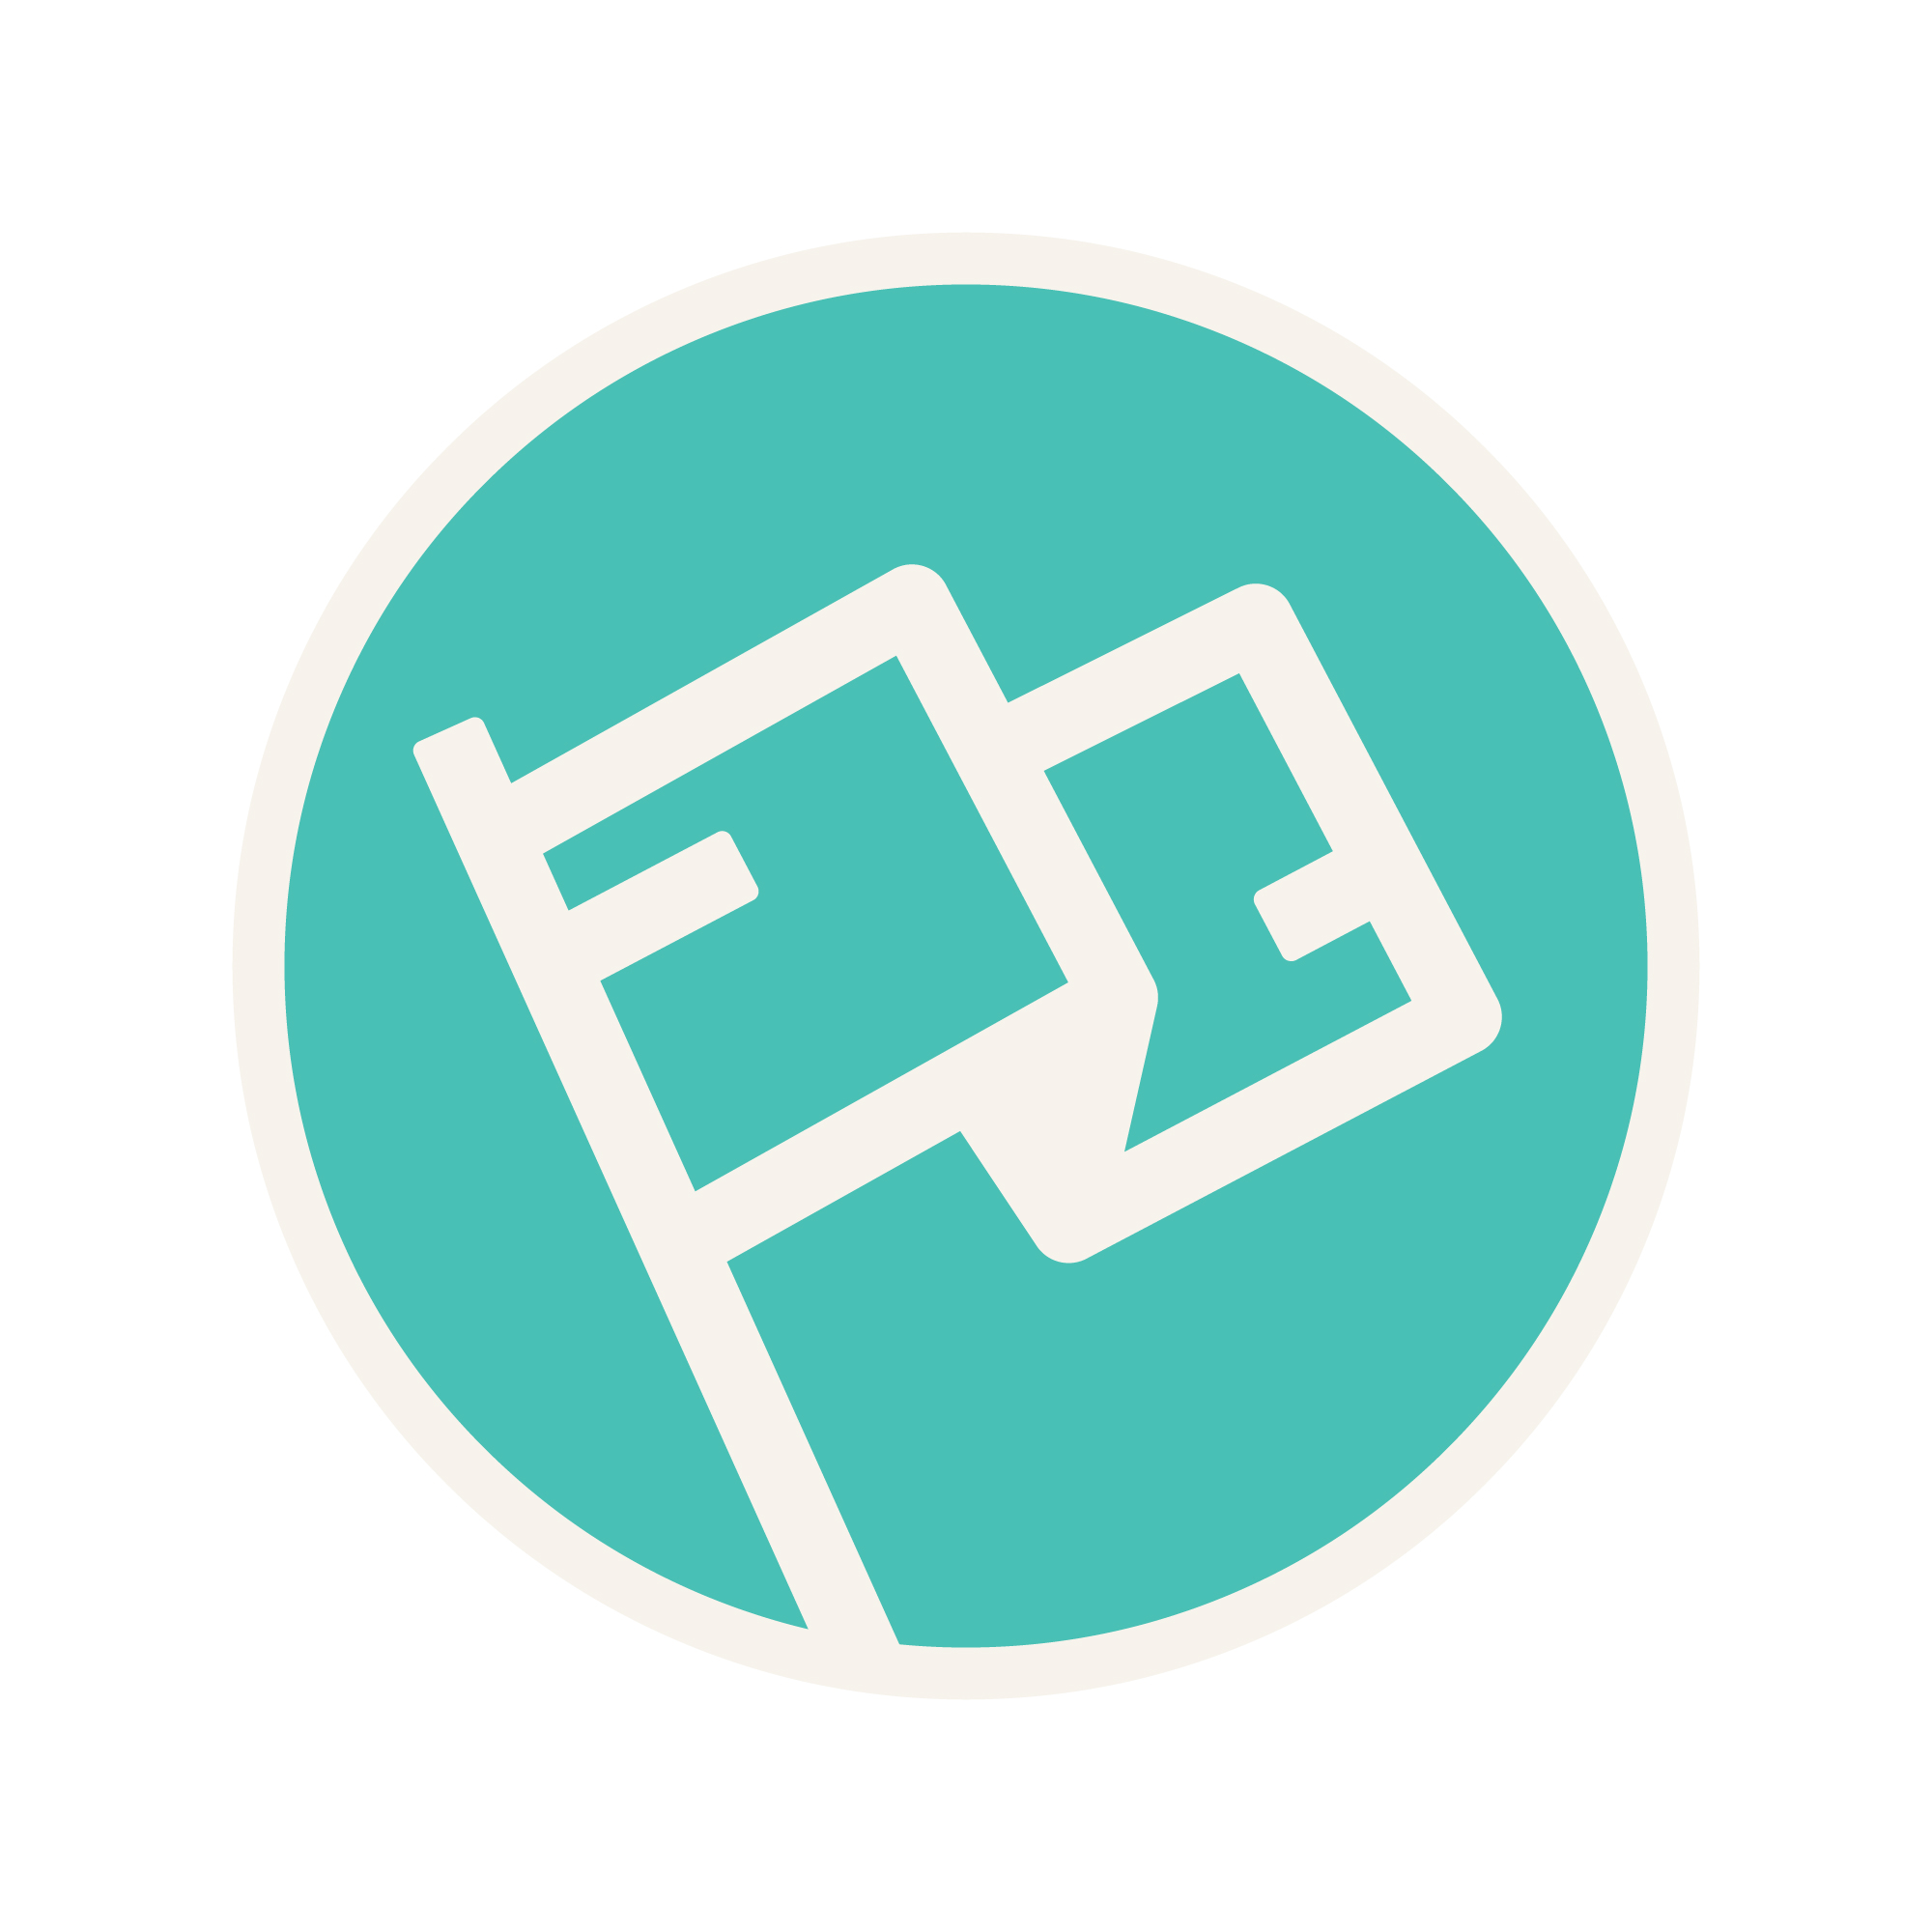 FoundrSpace_Branding_icon-palette 2.jpg